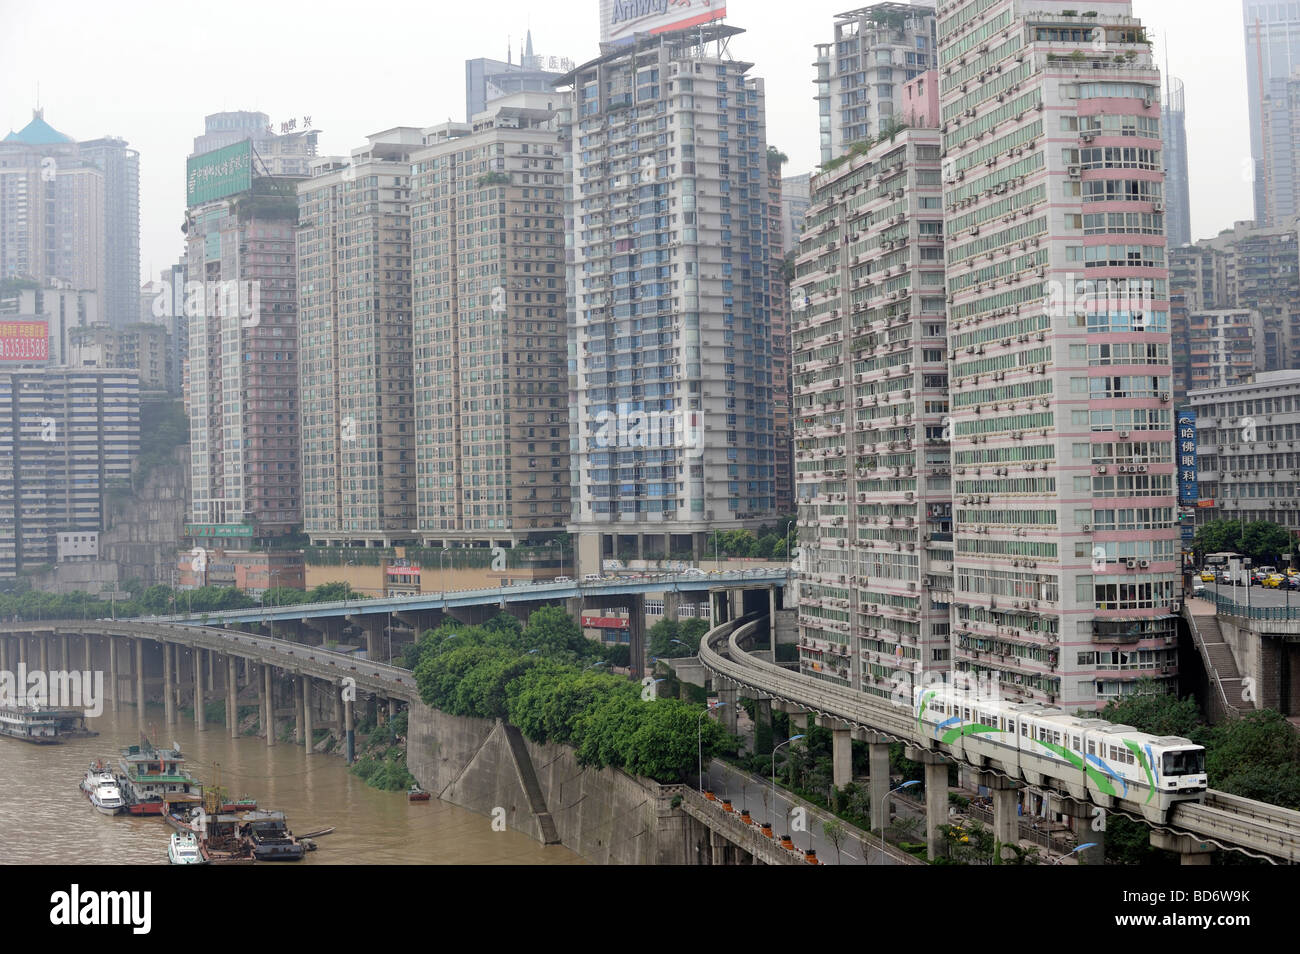 High density house buildings in Chongqing, China. 02-Aug-2009 - Stock Image